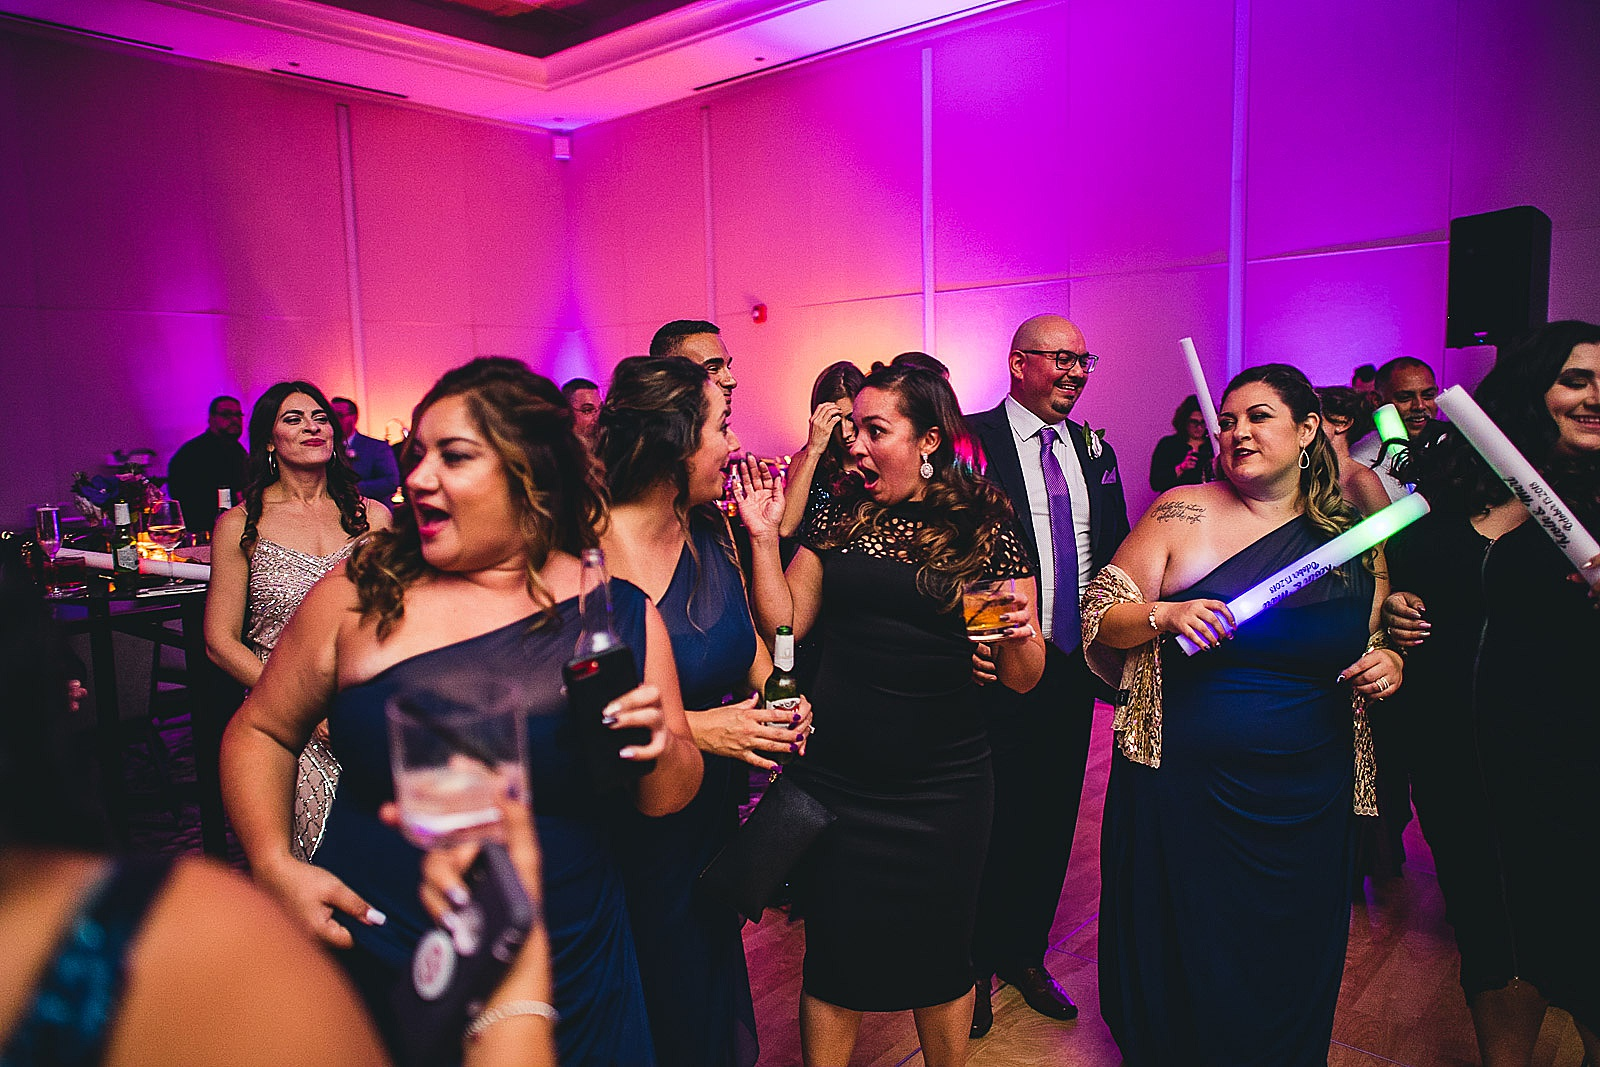 62 fun at london house hotel chicago - LondonHouse Wedding Photos // Mari + Kevin